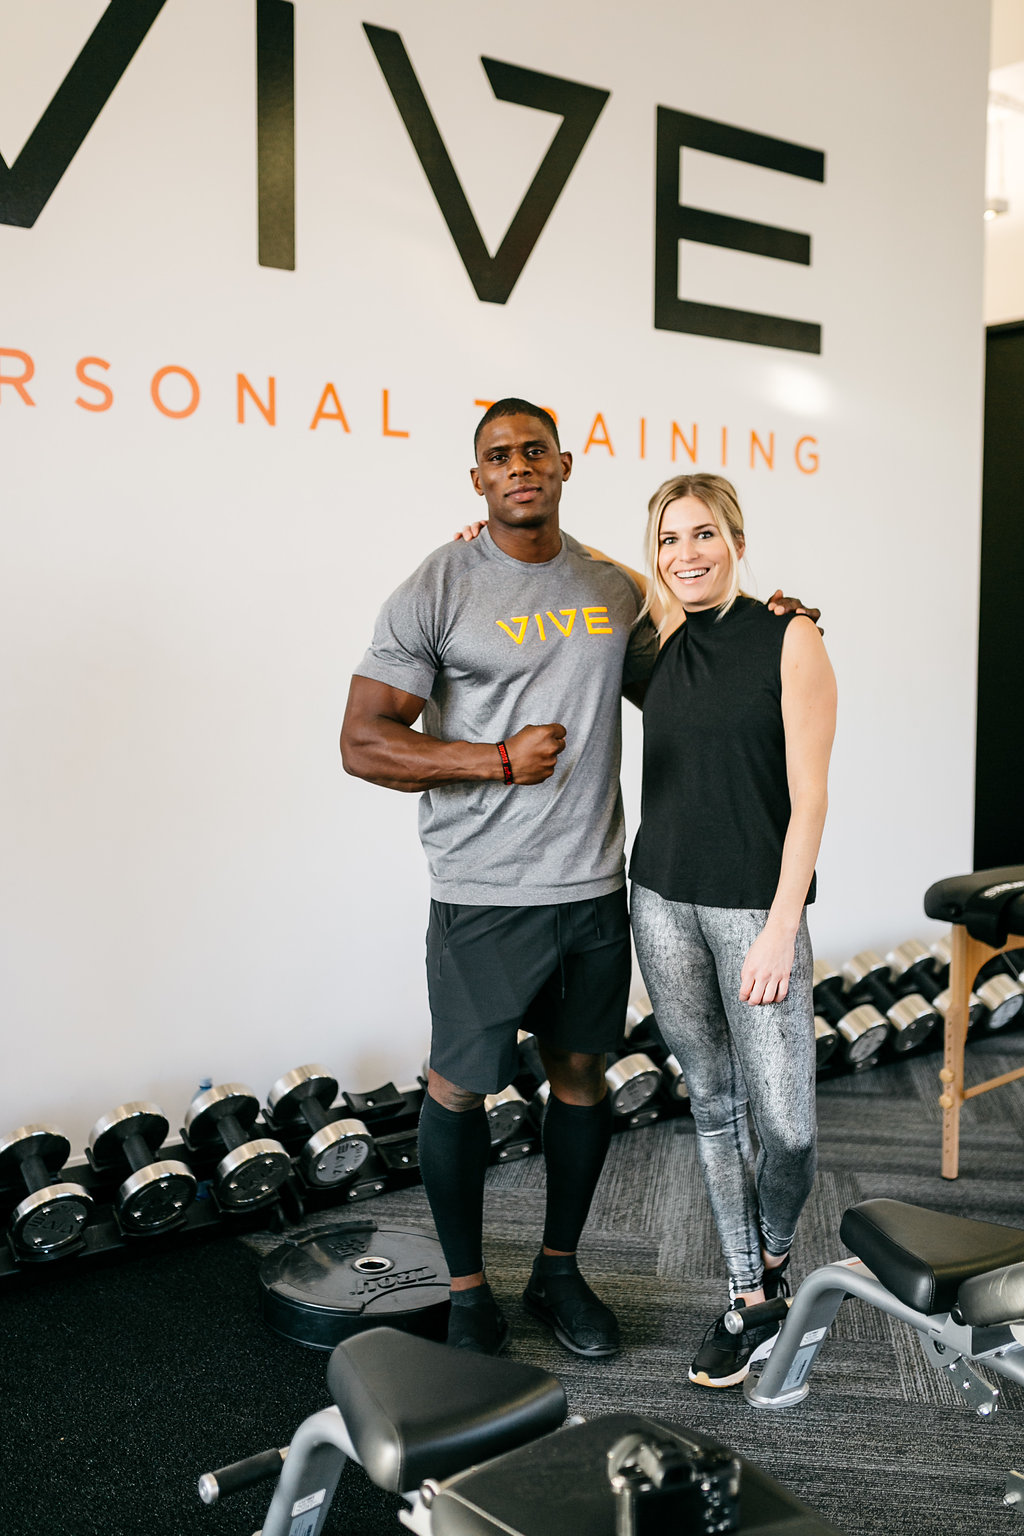 Brooke Burnett with Vive Personal Trainer